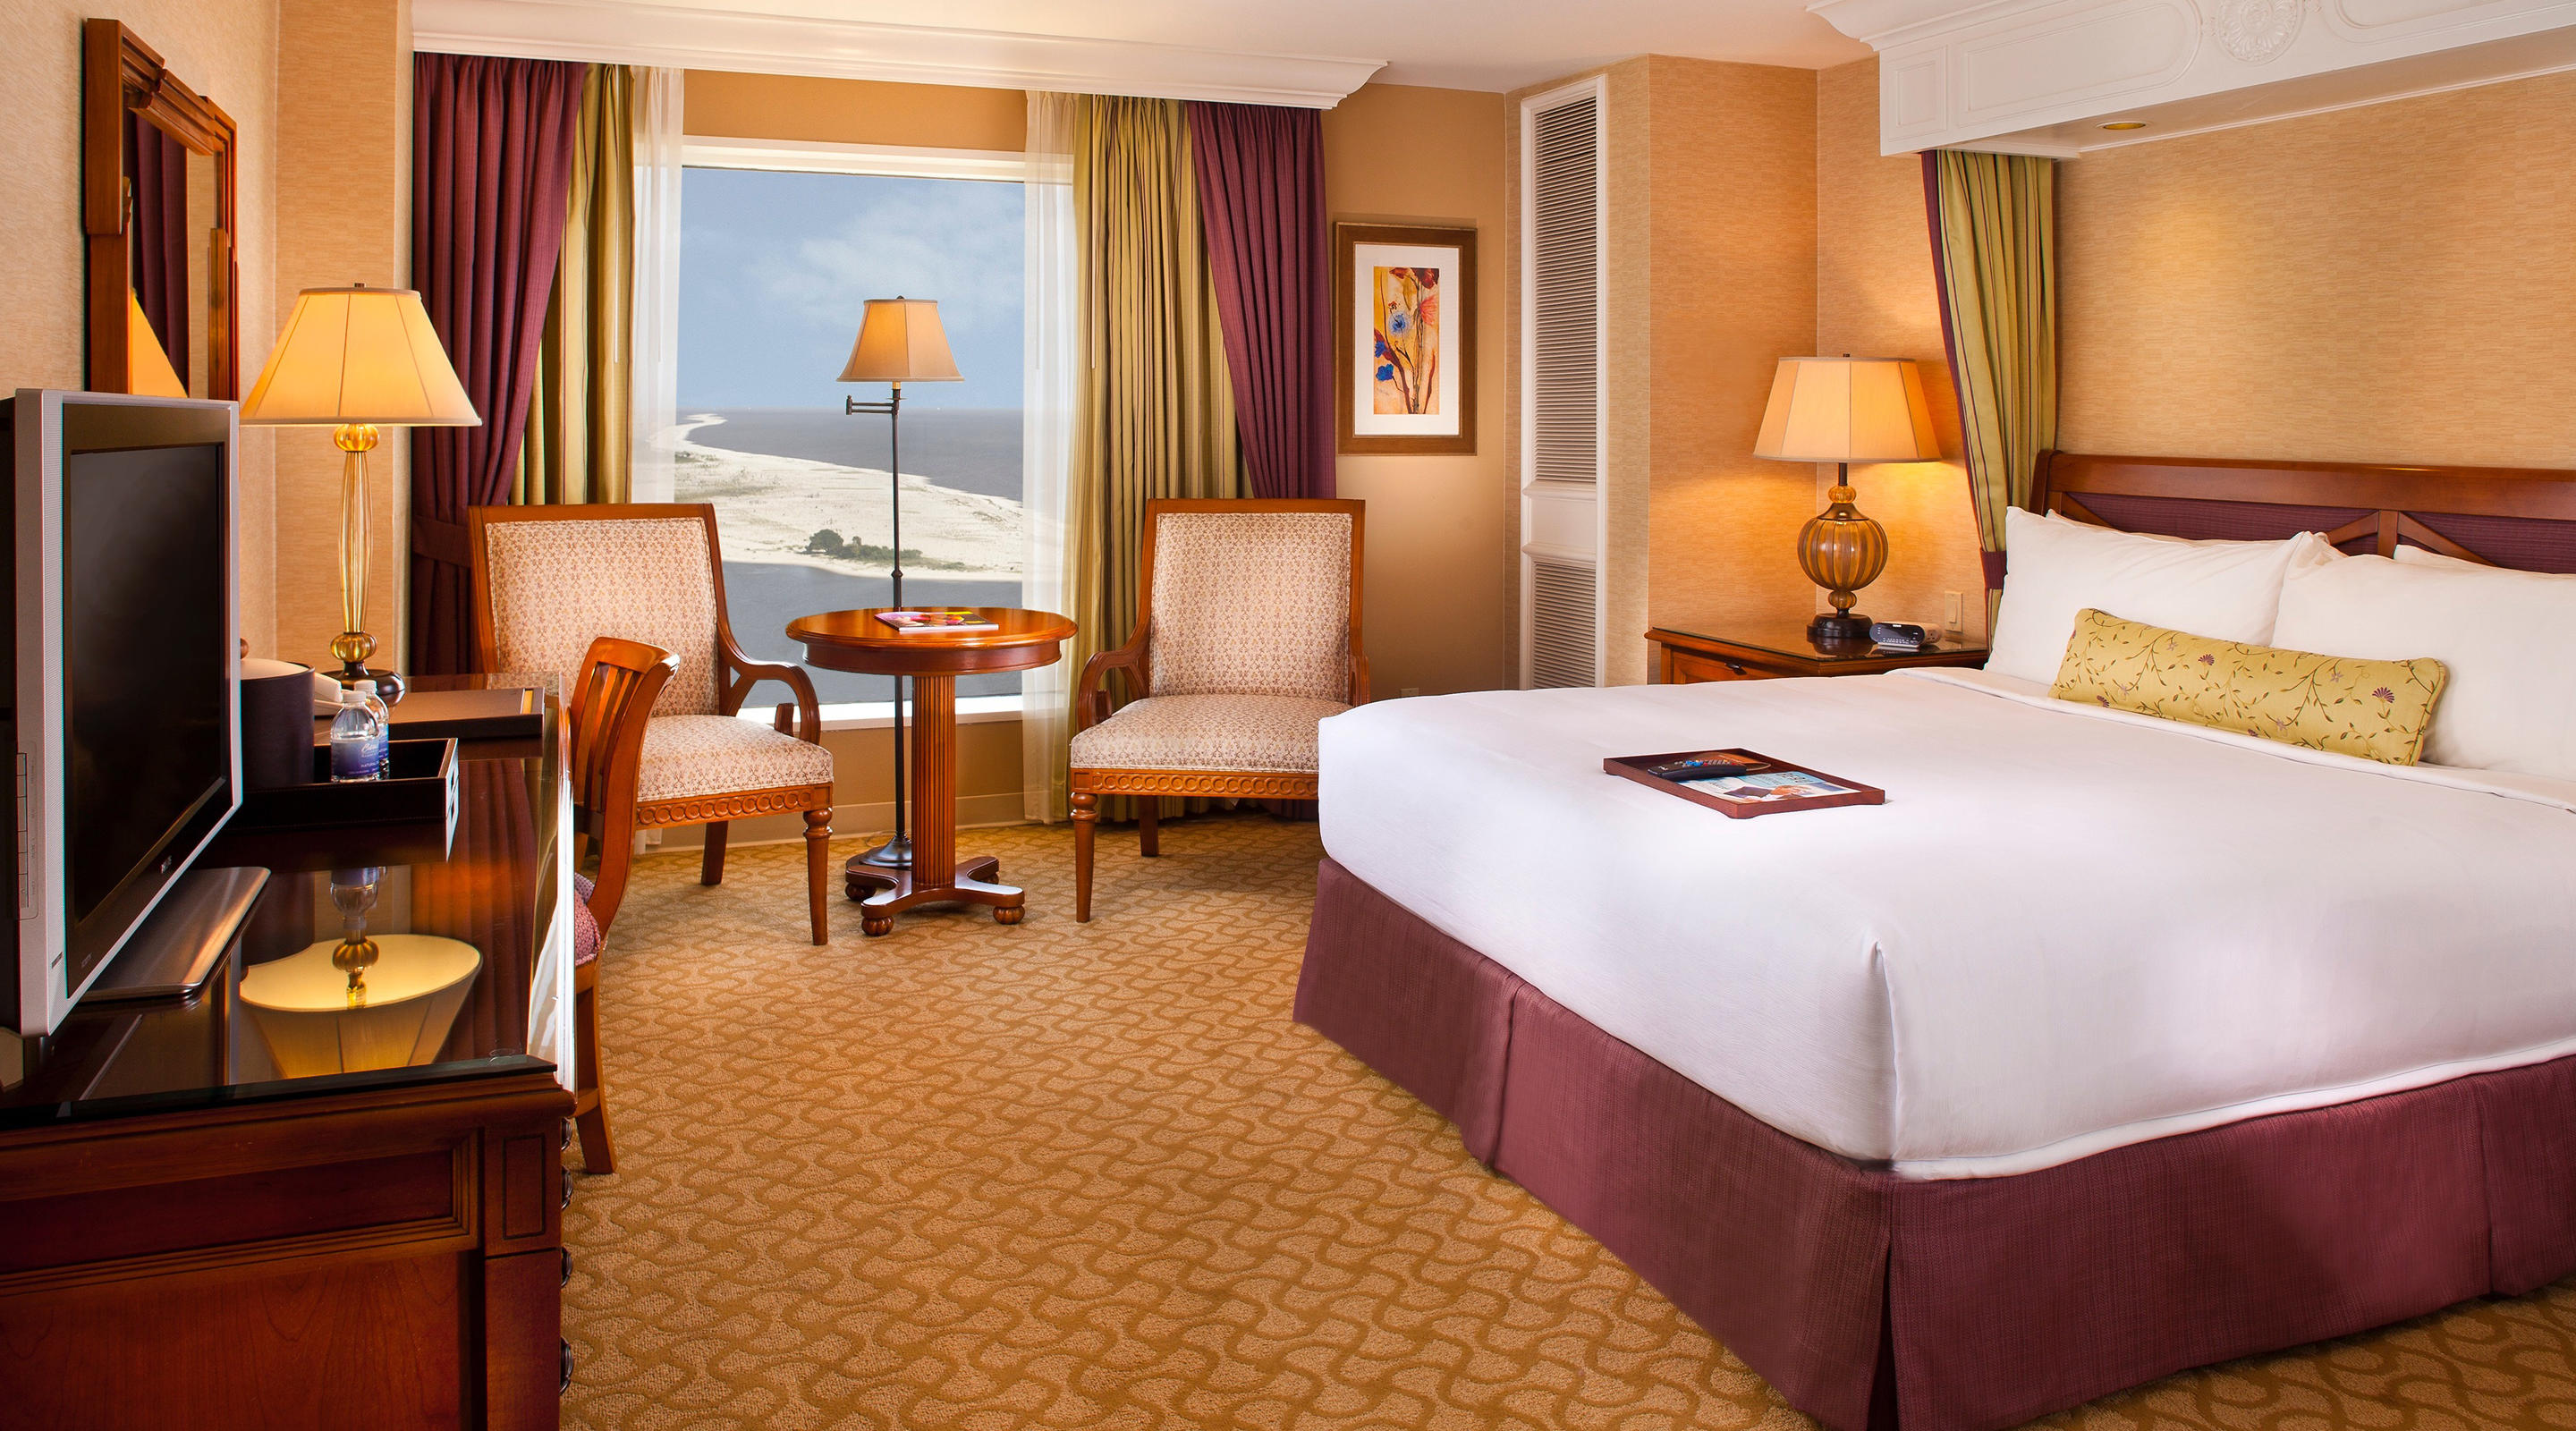 Beau Rivage Hotel Room Rates